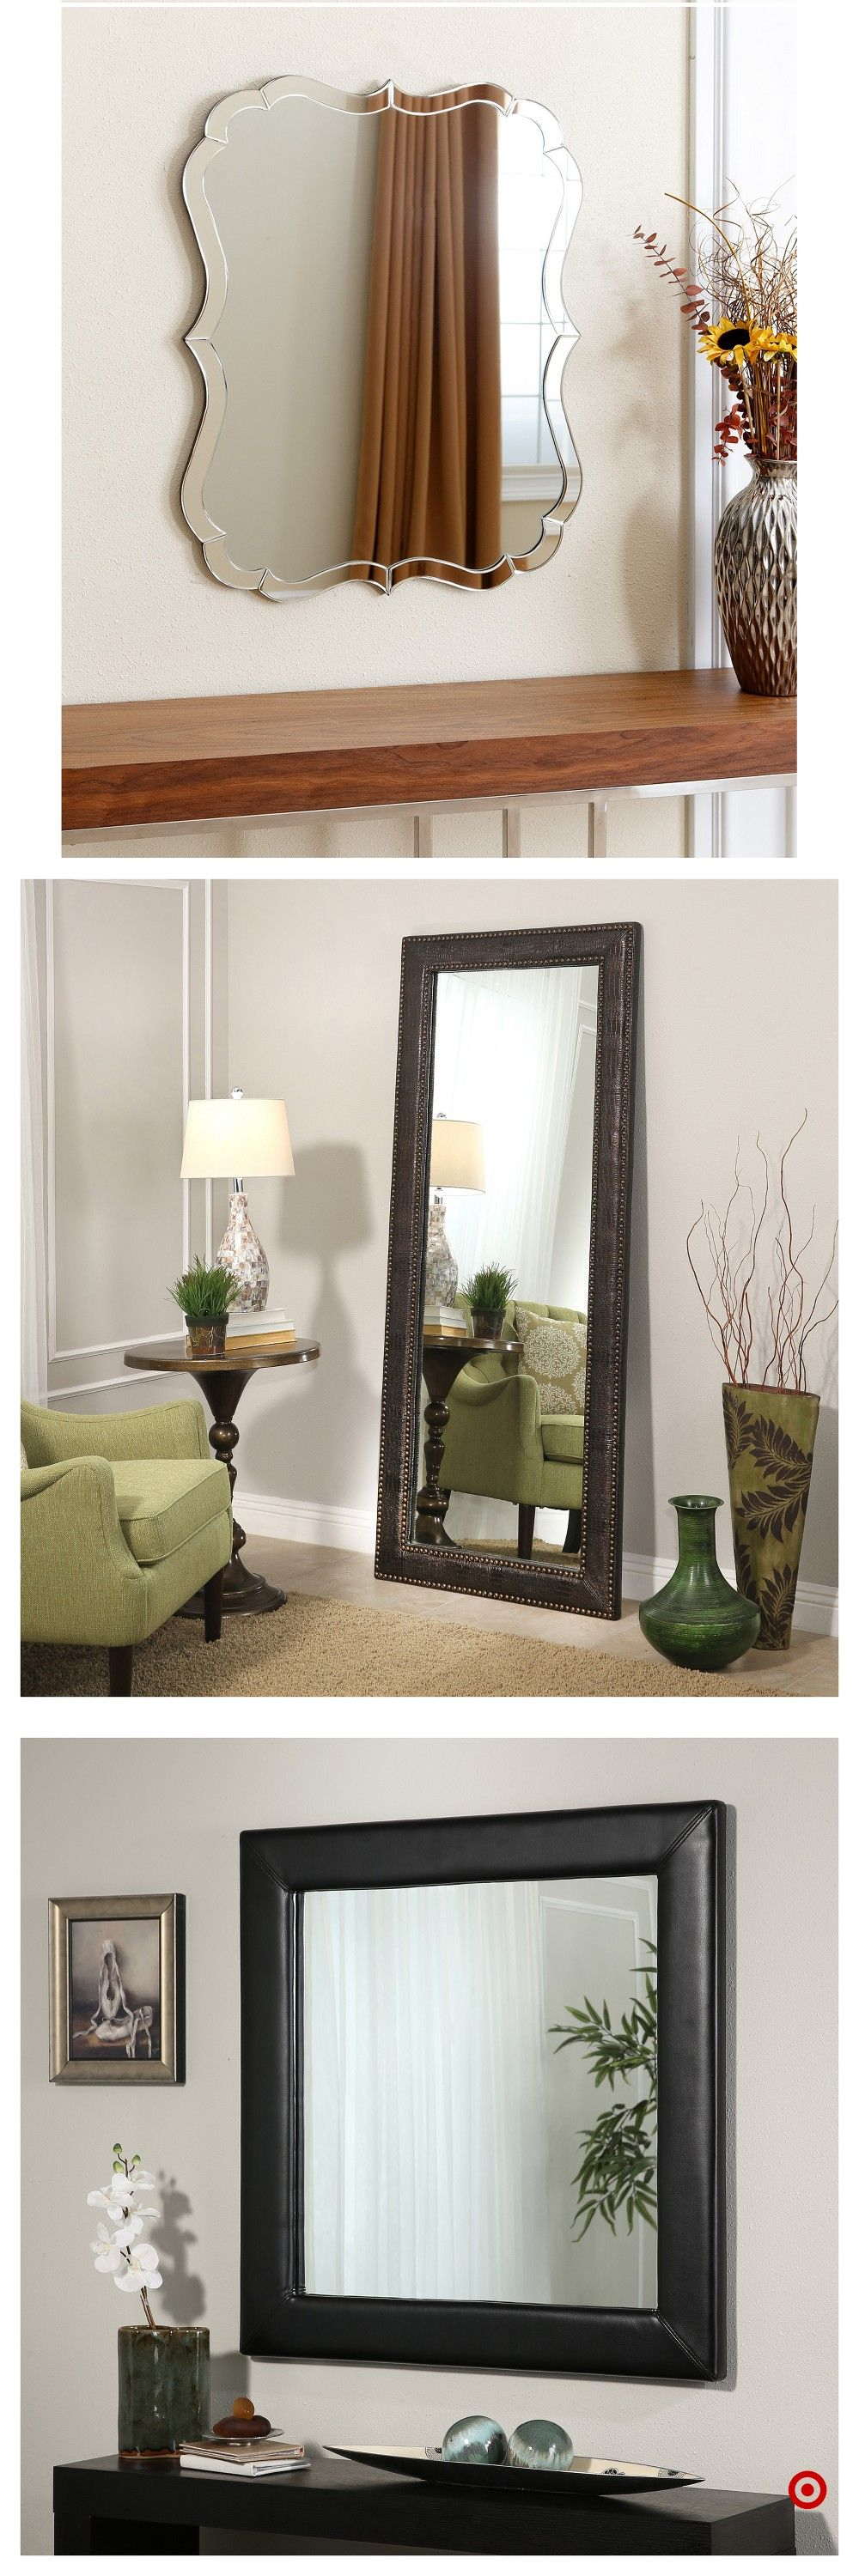 Shop Target For Decorative Wall Mirror You Will Love At Great Low Prices Free Shipping On Orders Of 35 Or Free Same Day P Decor Mirror Wall Decor Room Decor